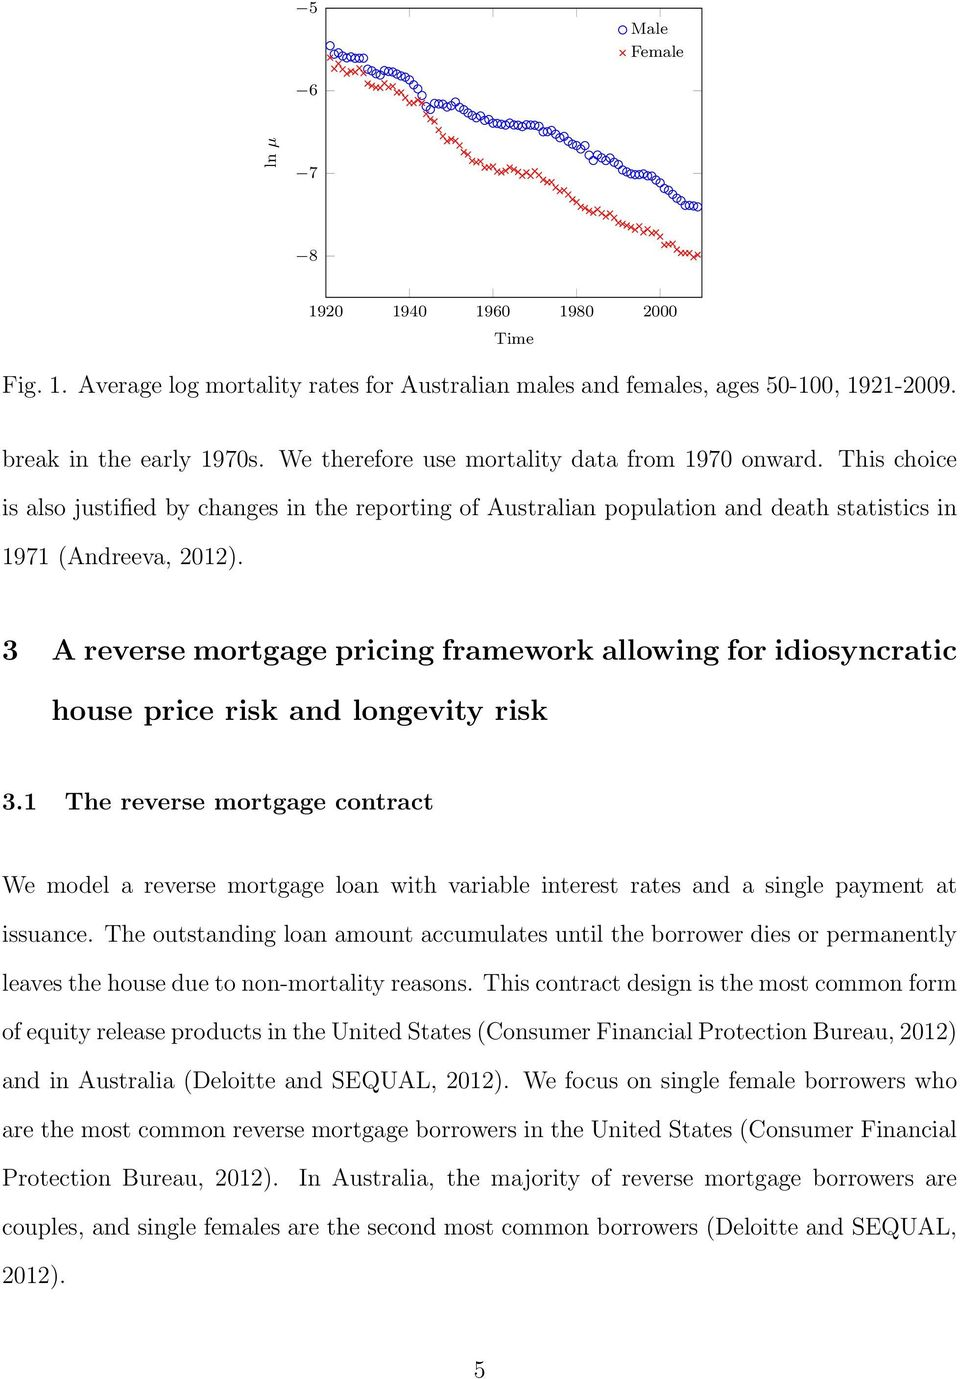 3 A reverse mortgage pricing framework allowing for idiosyncratic house price risk and longevity risk 3.